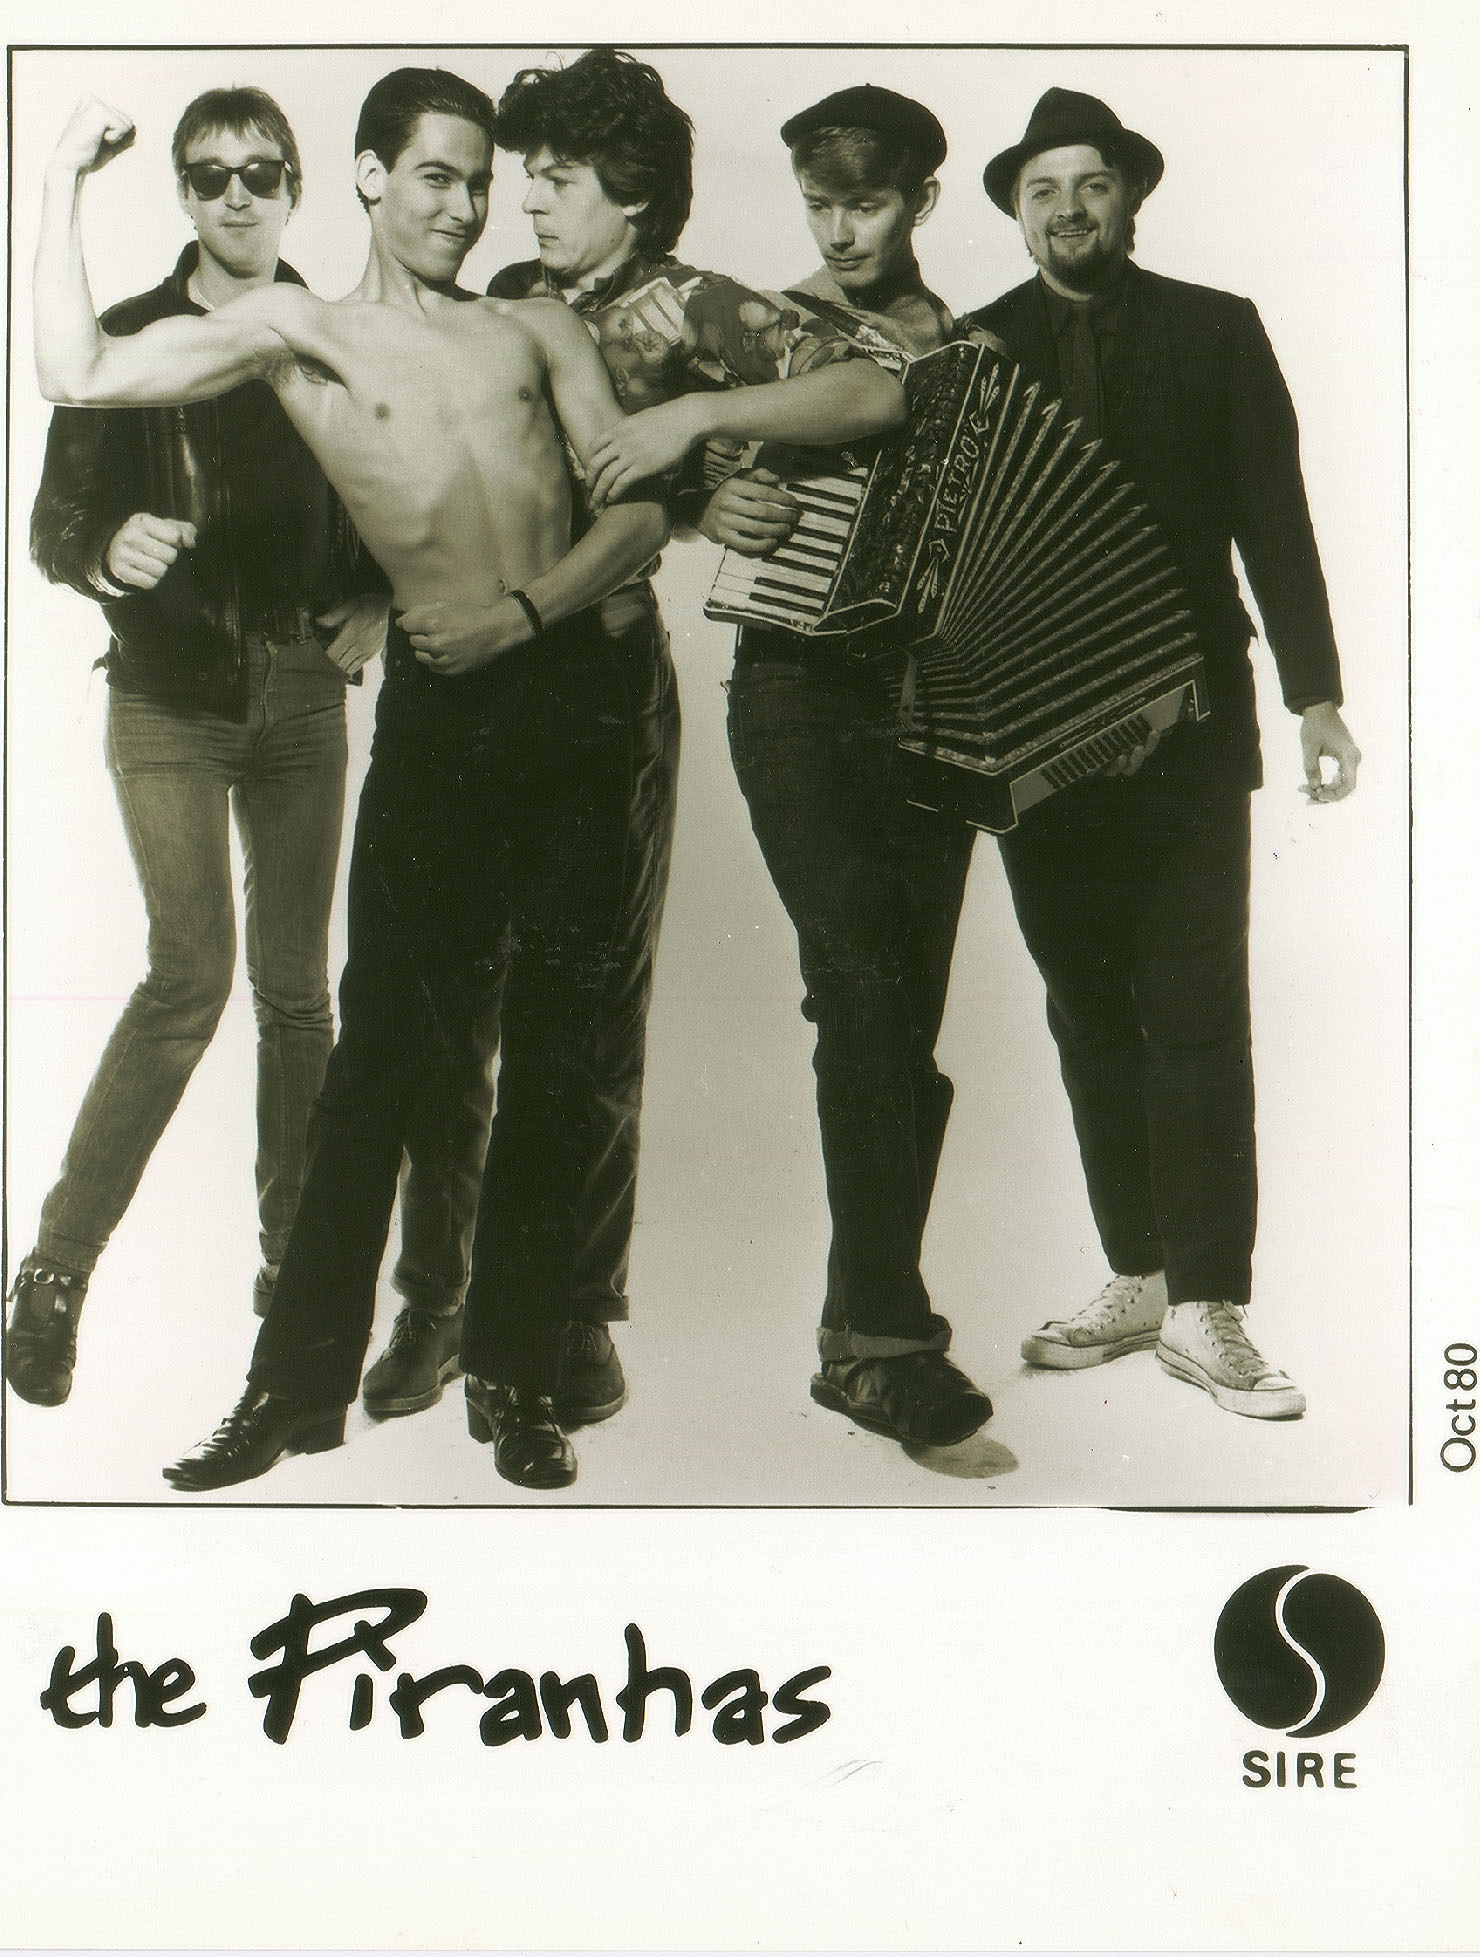 The Piranhas - Richard Adland pictured second from left